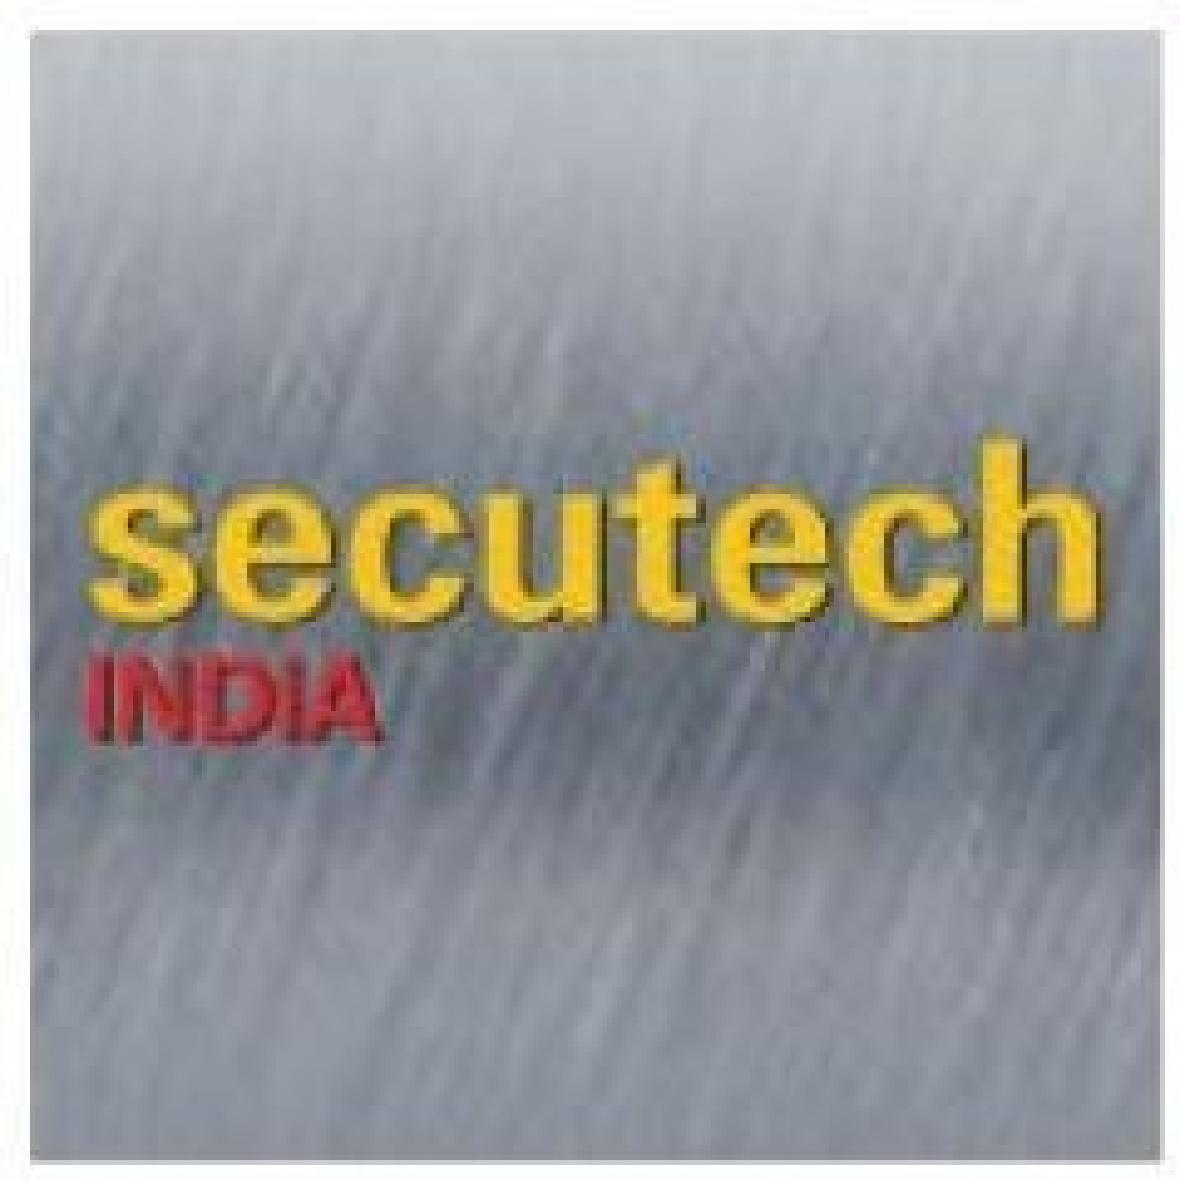 Secutech India 2019